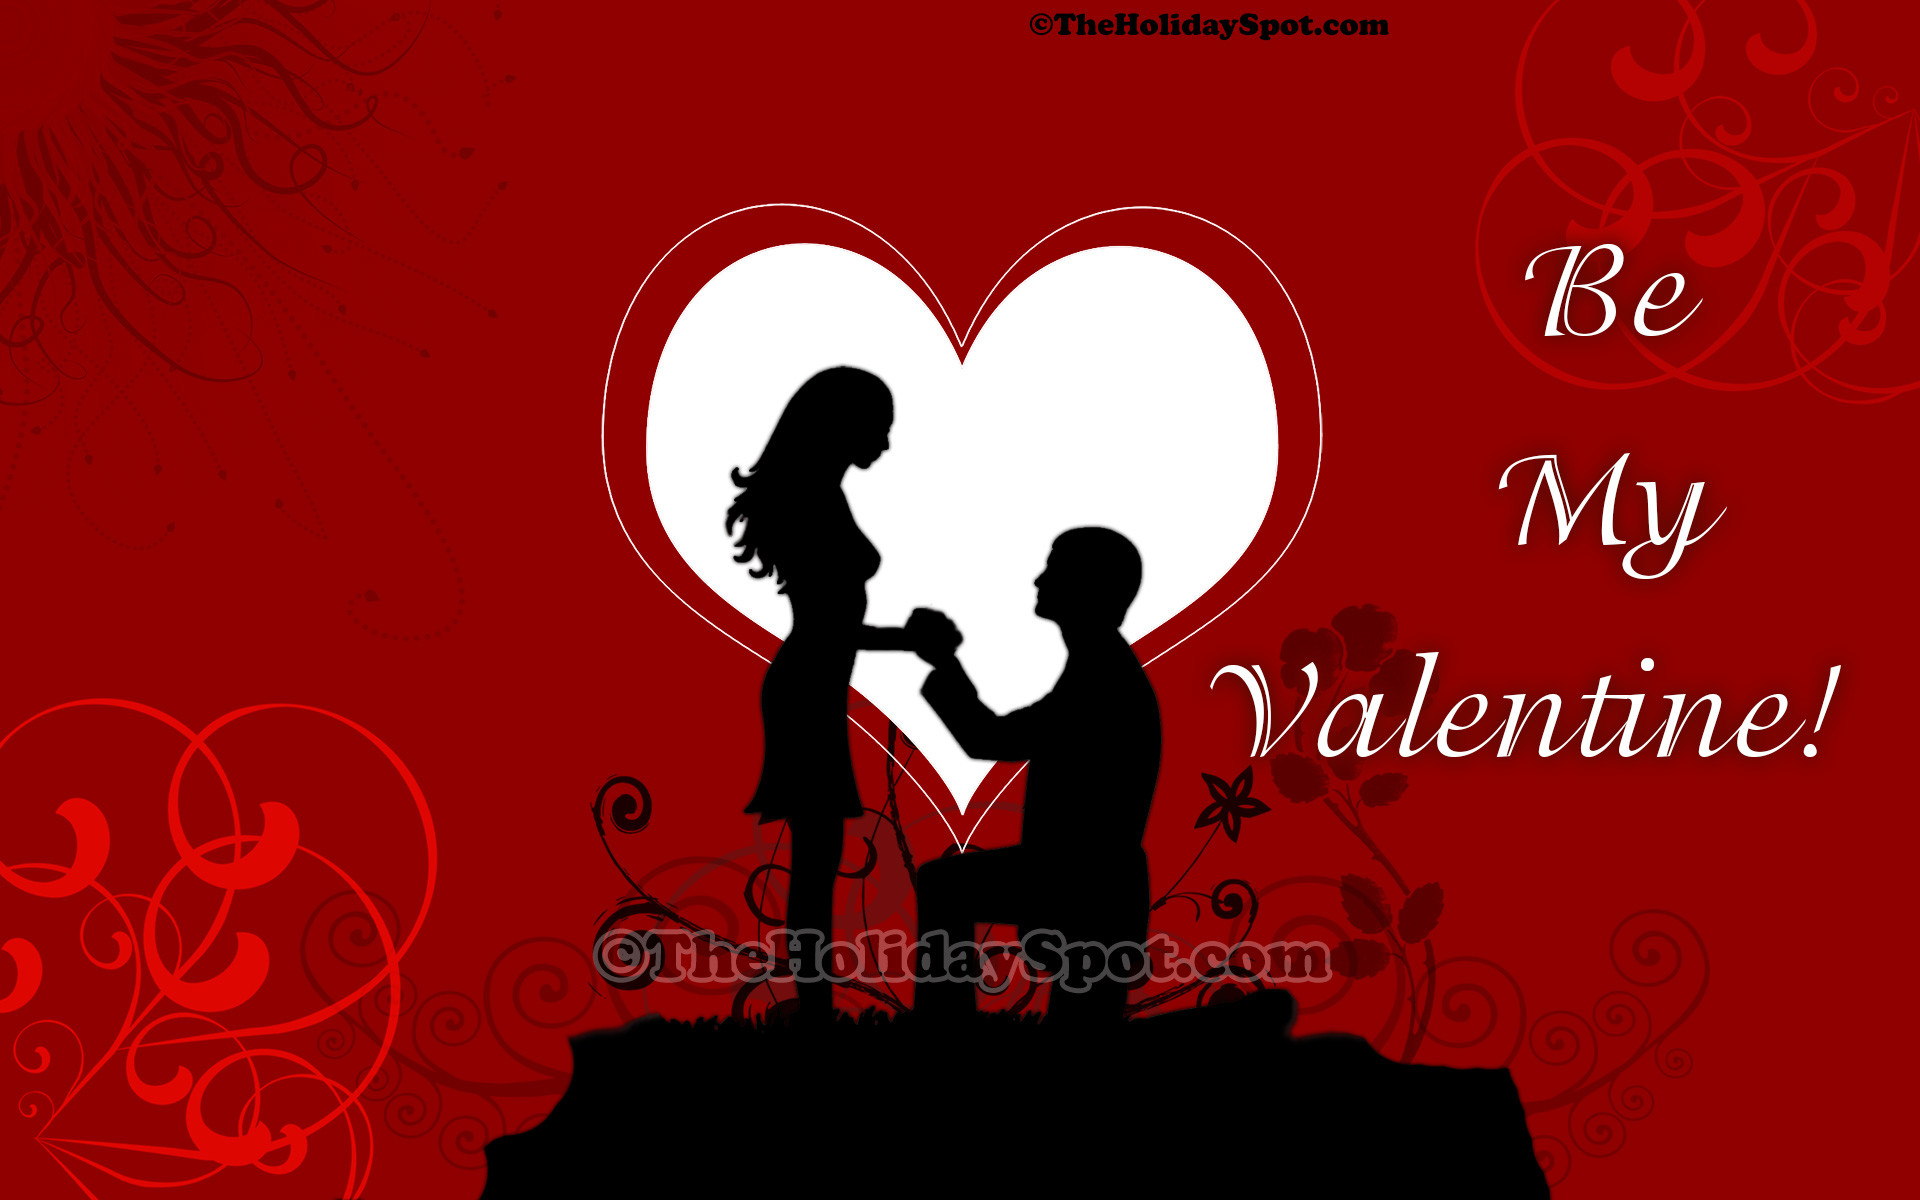 Valentine wallpaper pictures 1920x1200 valentines day wallpaper themed with proposal voltagebd Choice Image